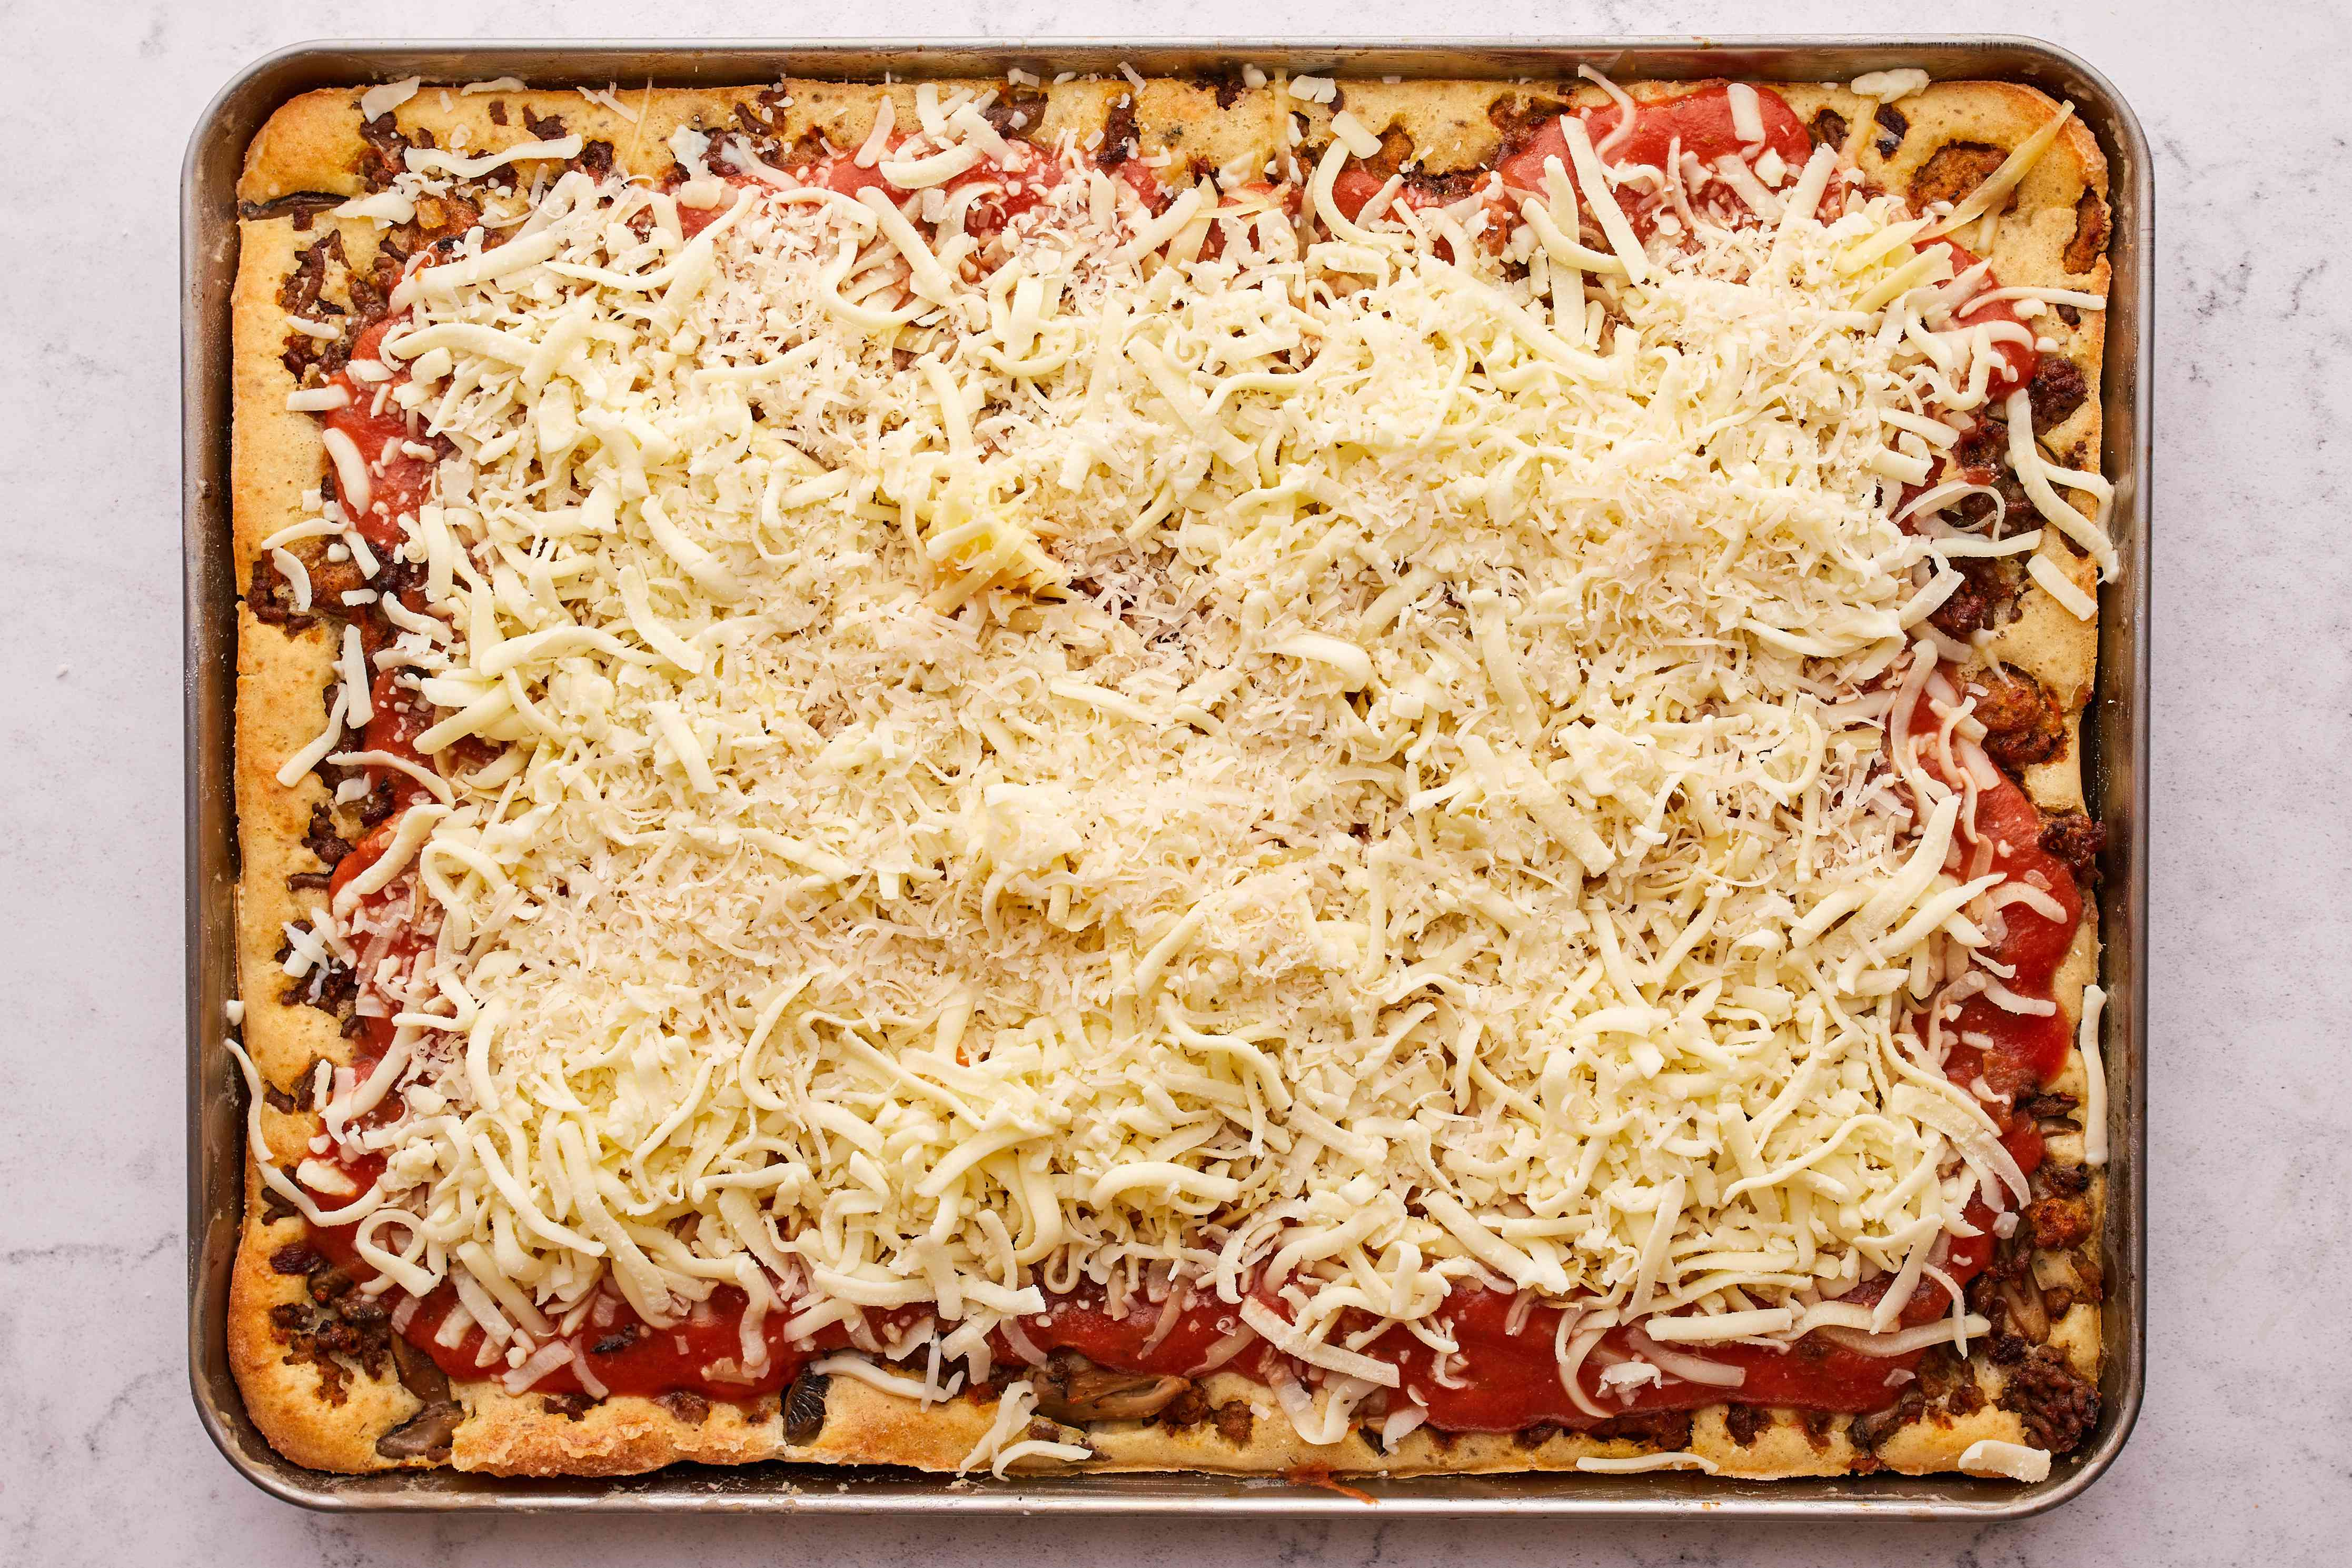 Crazy Crust Pizza, sauce an cheese on top